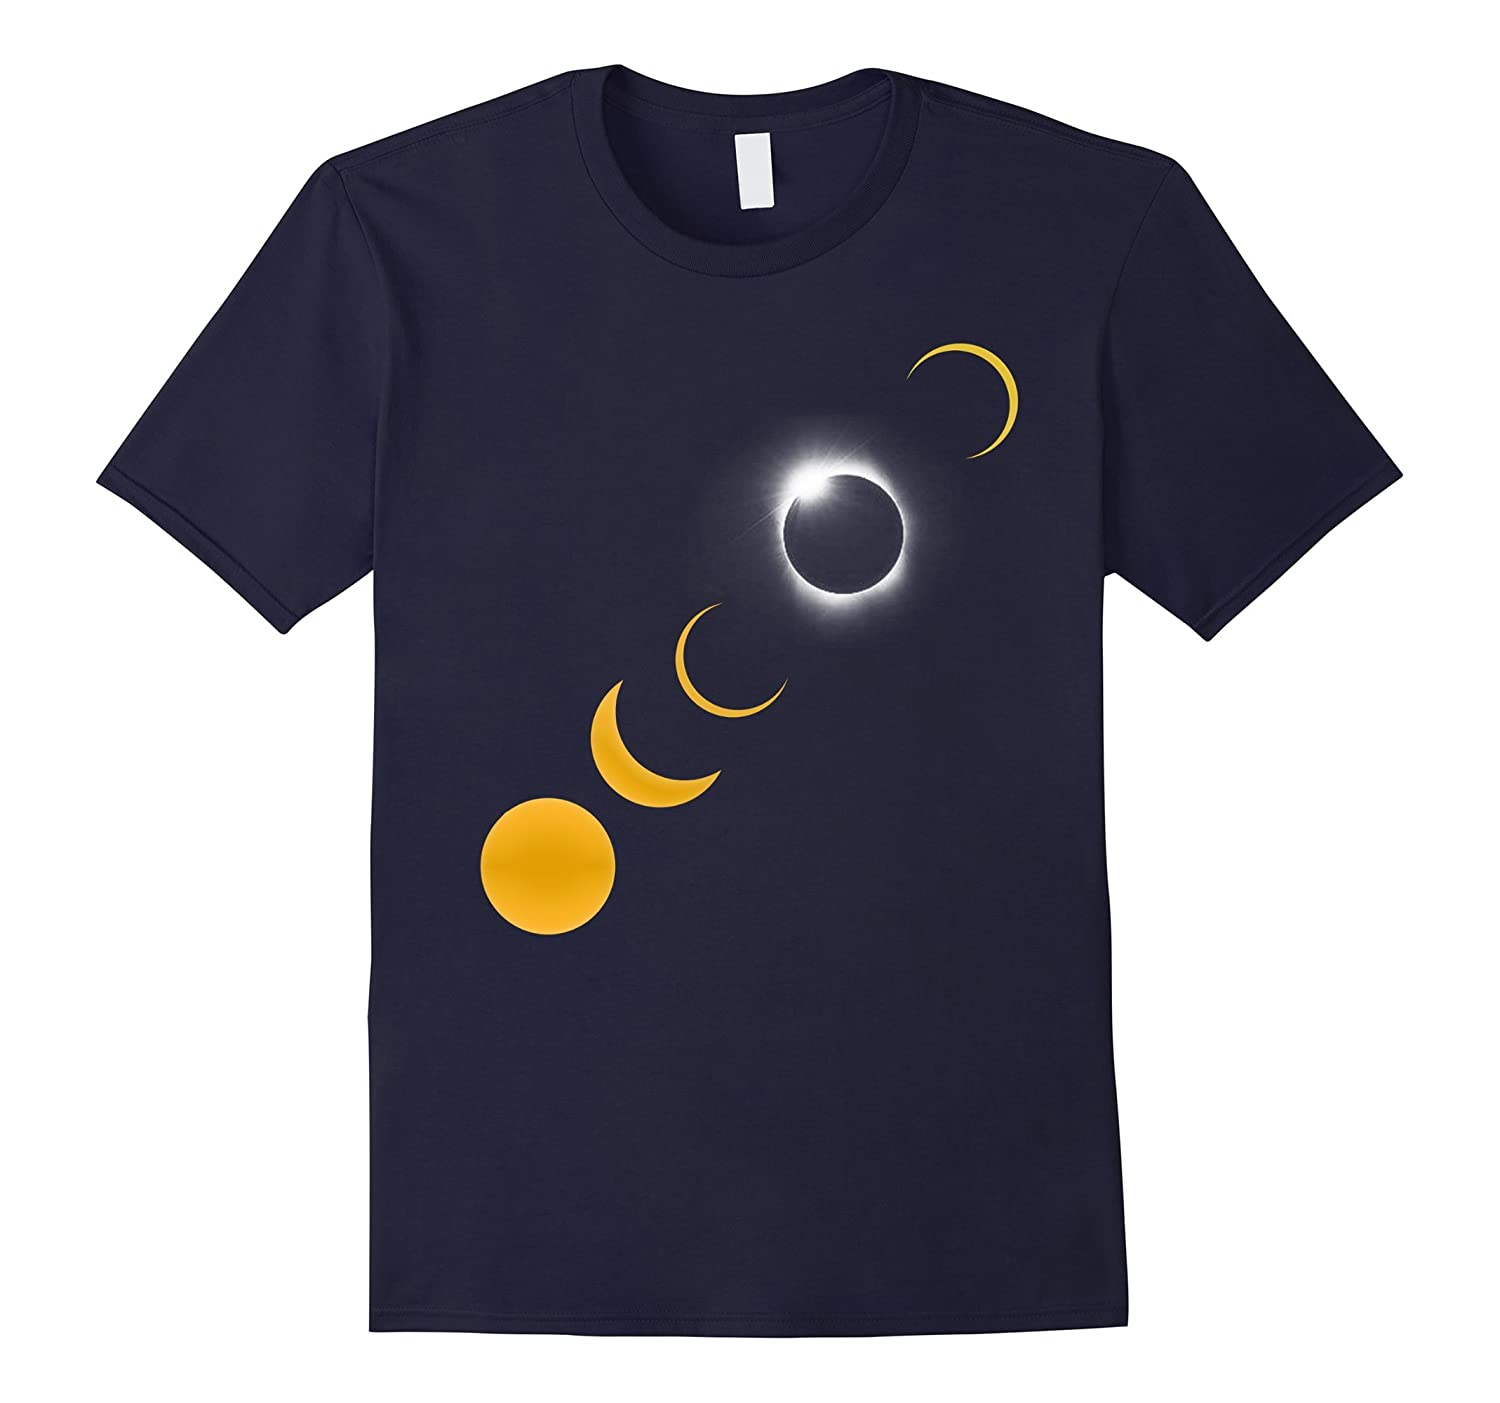 August 2017 Solar Eclipse Tee - Sun Eclipse Shirt Souvenirs-BN